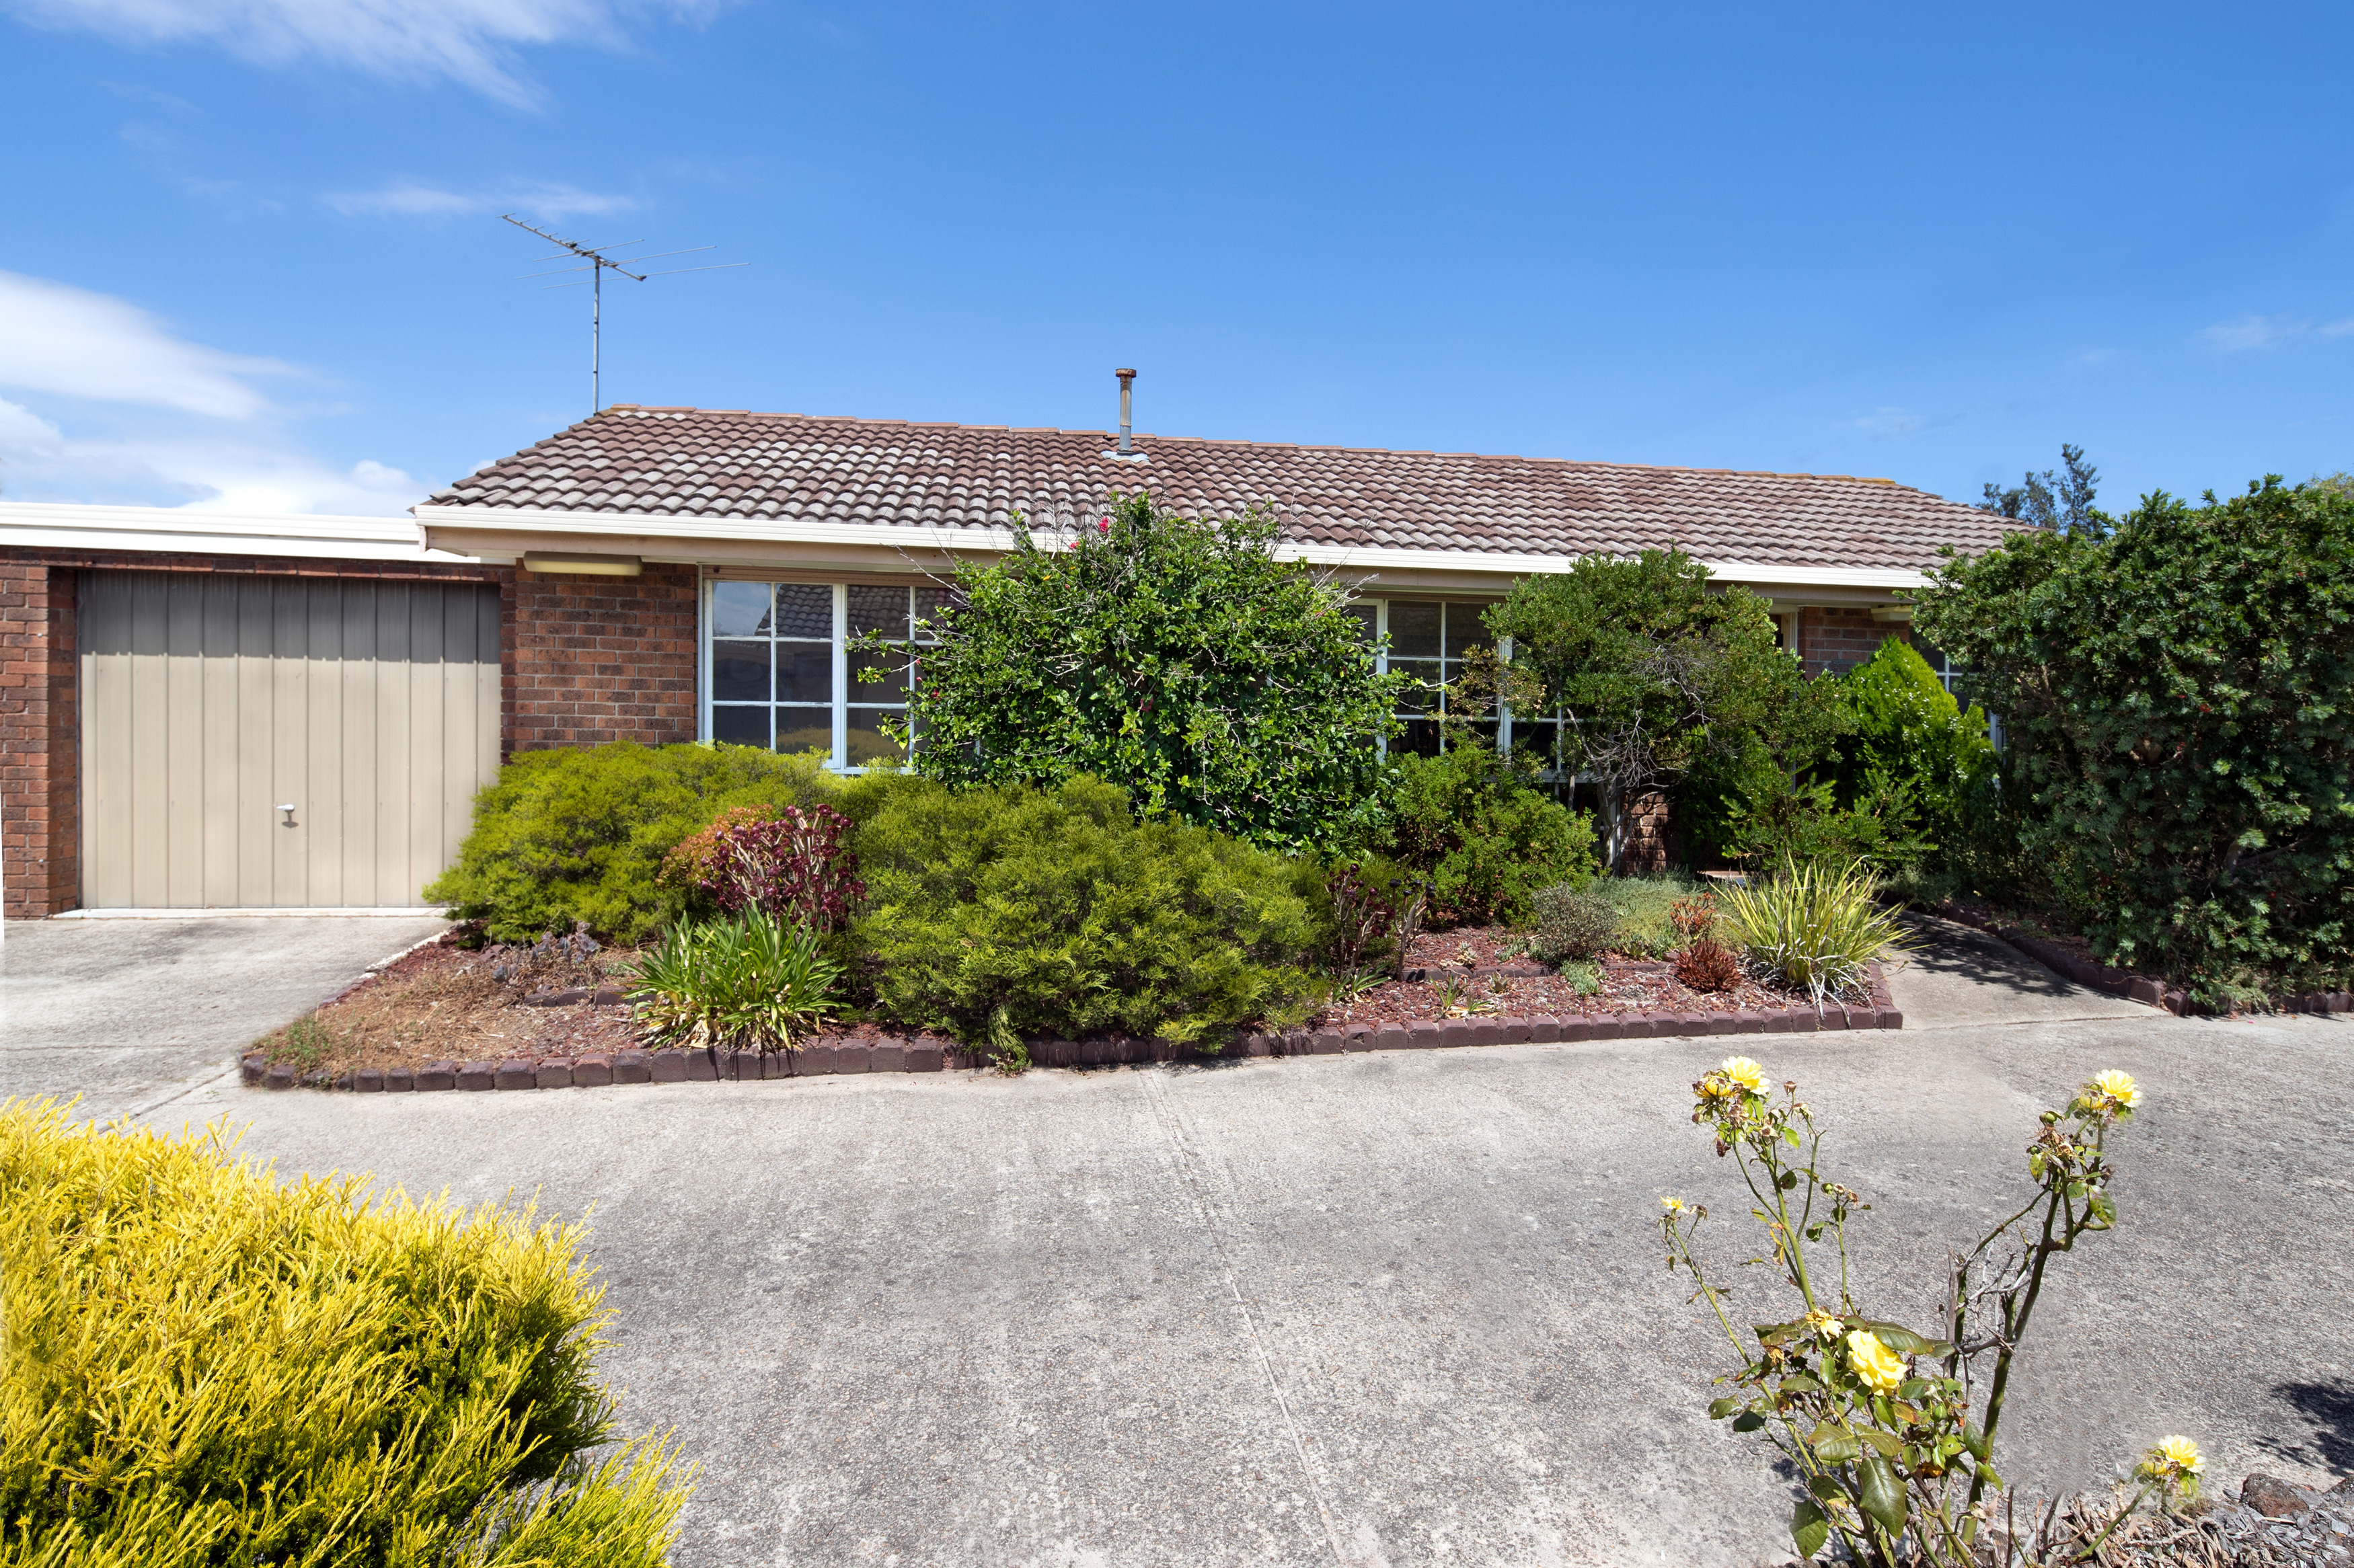 2/279 Nepean Highway, SEAFORD, VIC, 3198 - Image